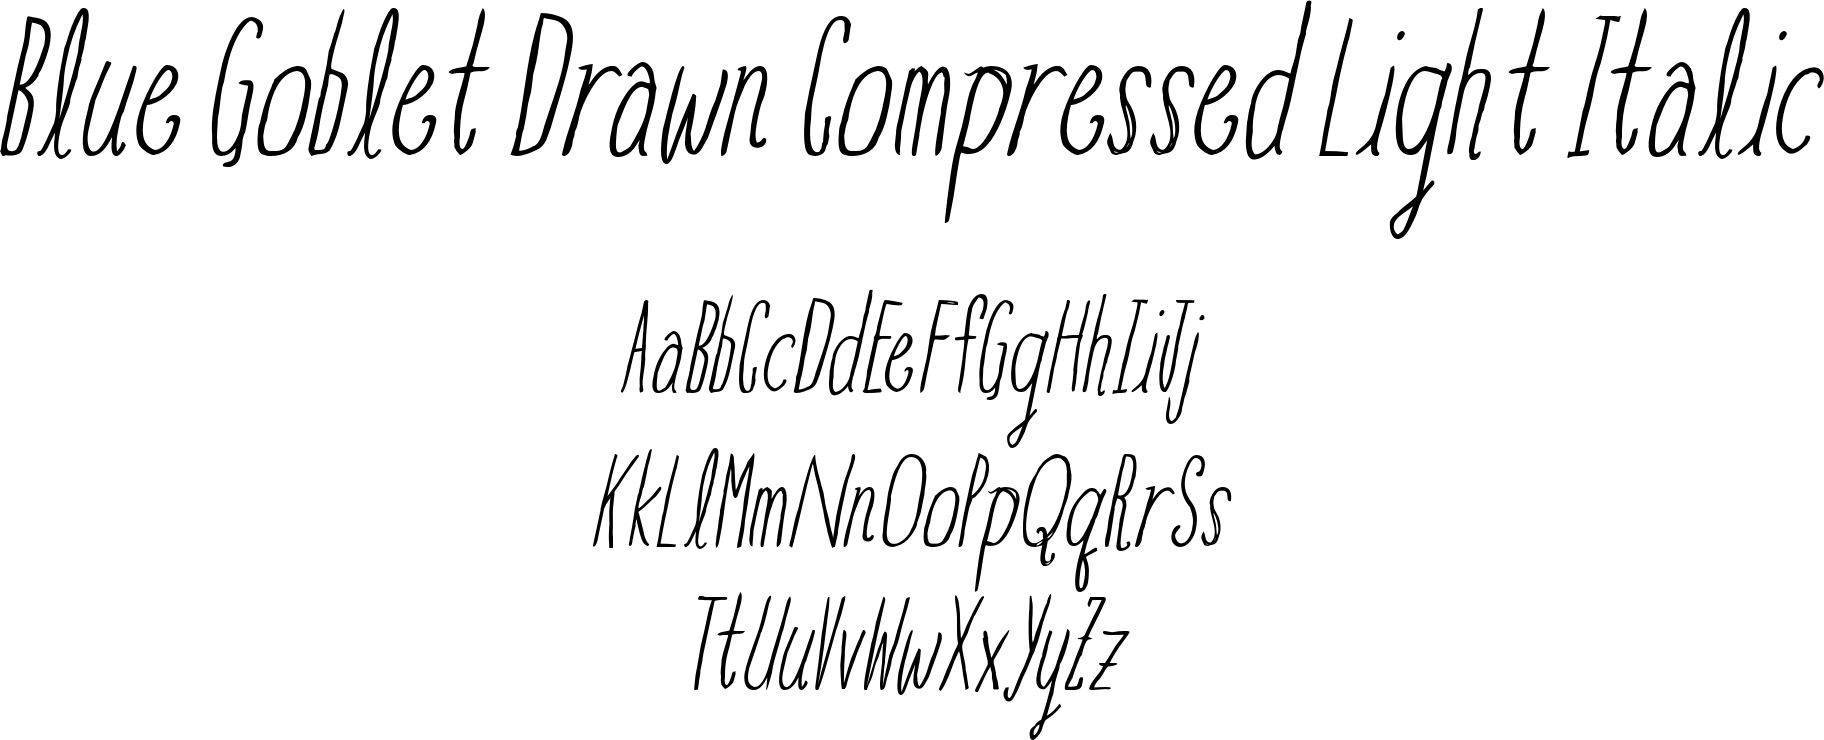 Blue Goblet Drawn Compressed Light Italic